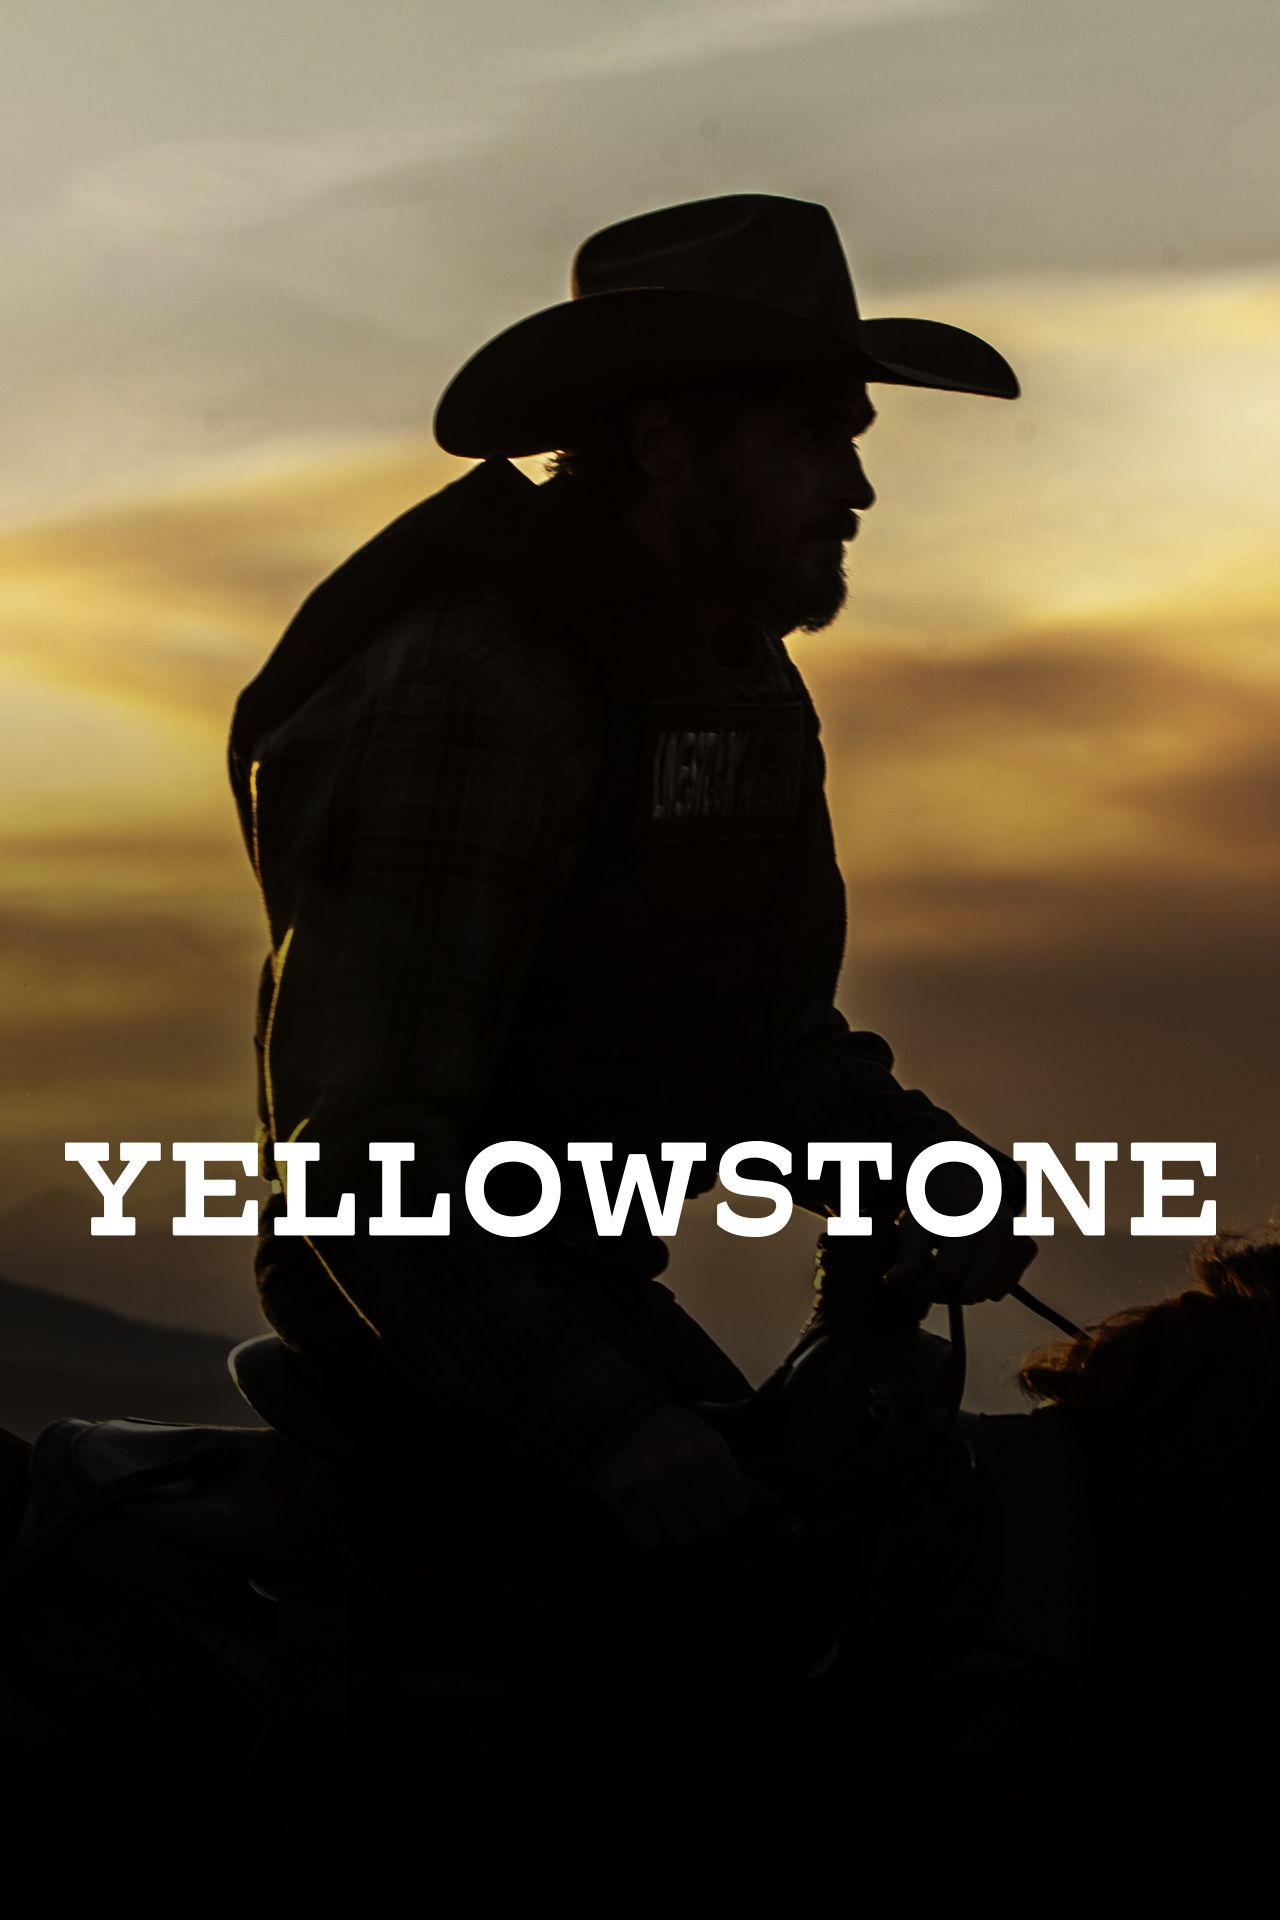 More Than A Kevin Costner Fan   : New trailer for 'Yellowstone' with